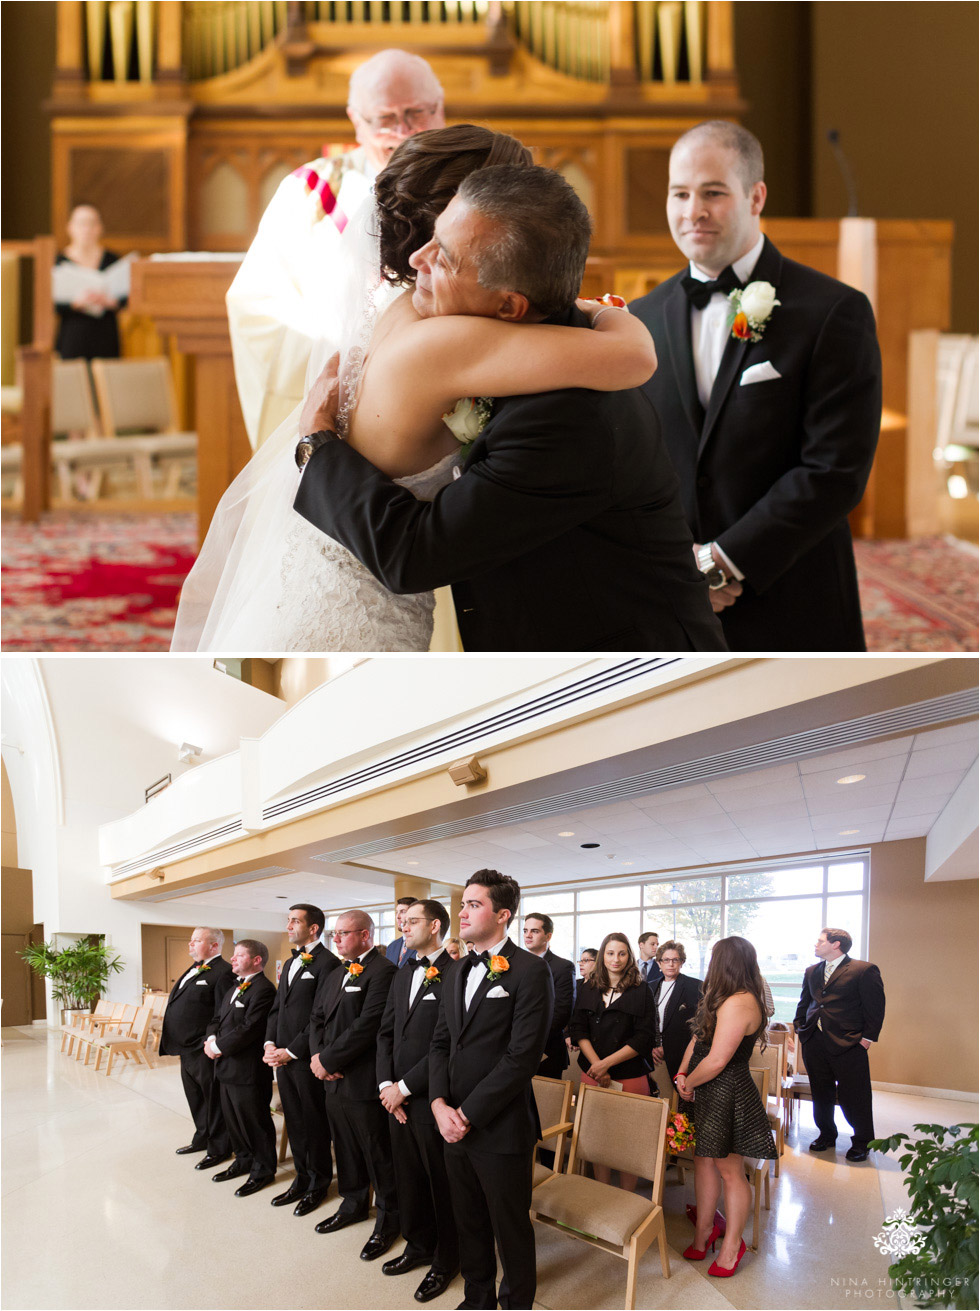 Wedding ceremony at Saint Josephs University campus in Philadelphia, Pennsylvania - Blog of Nina Hintringer Photography - Wedding Photography, Wedding Reportage and Destination Weddings